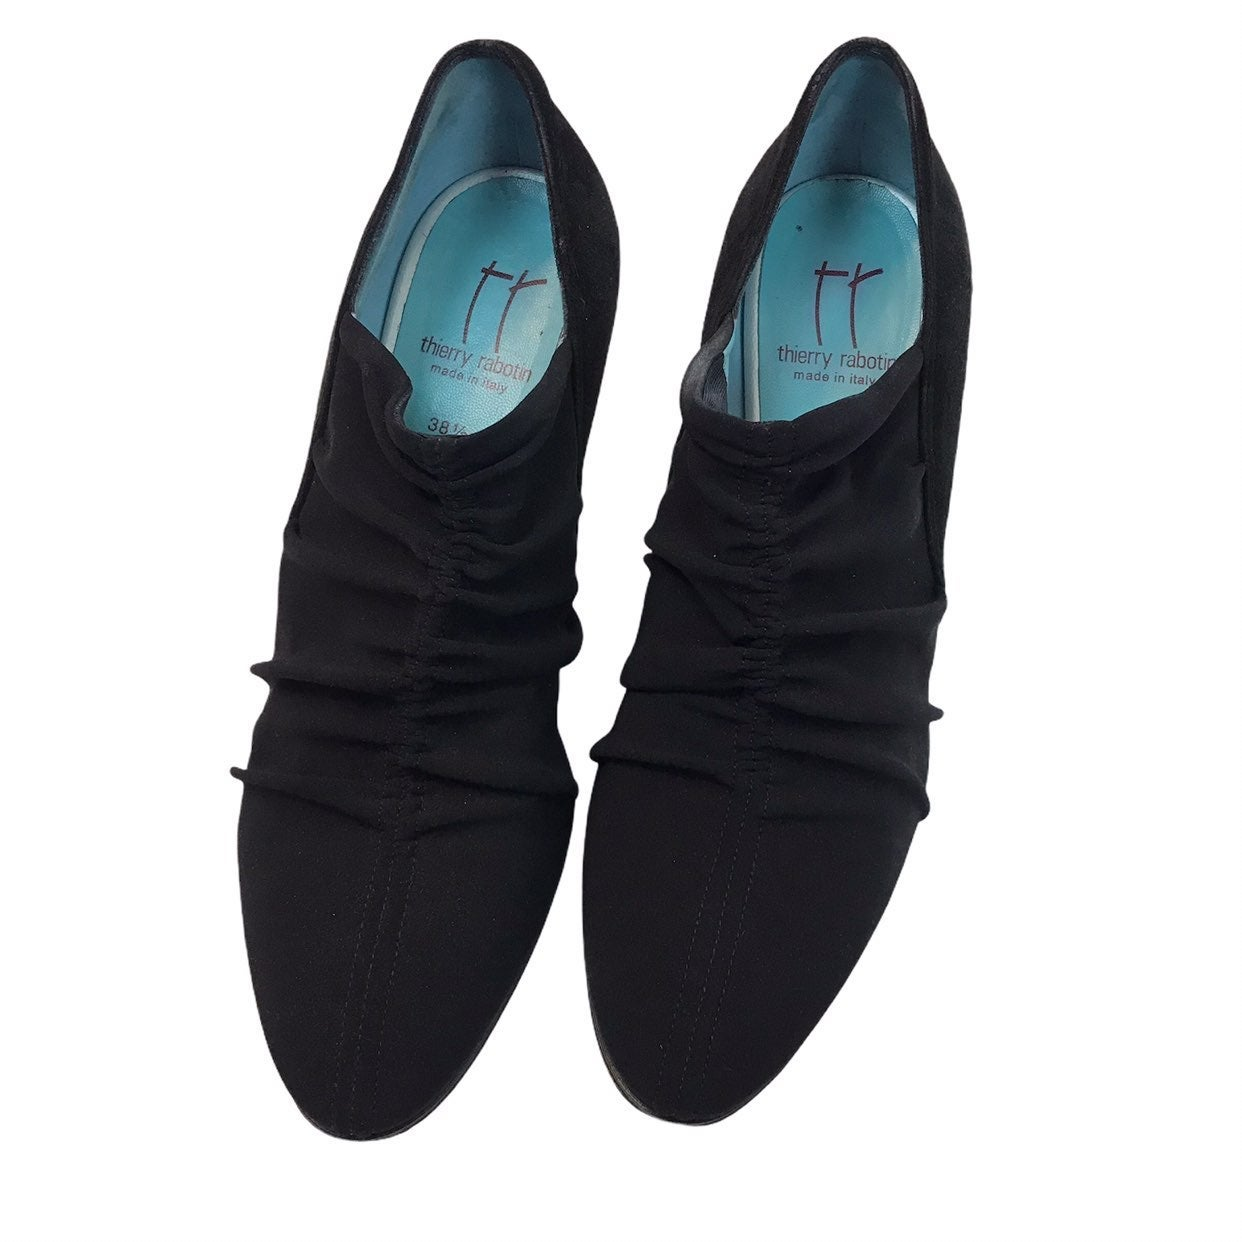 Thierry Rabotin Black Suede shoes 38 1/2